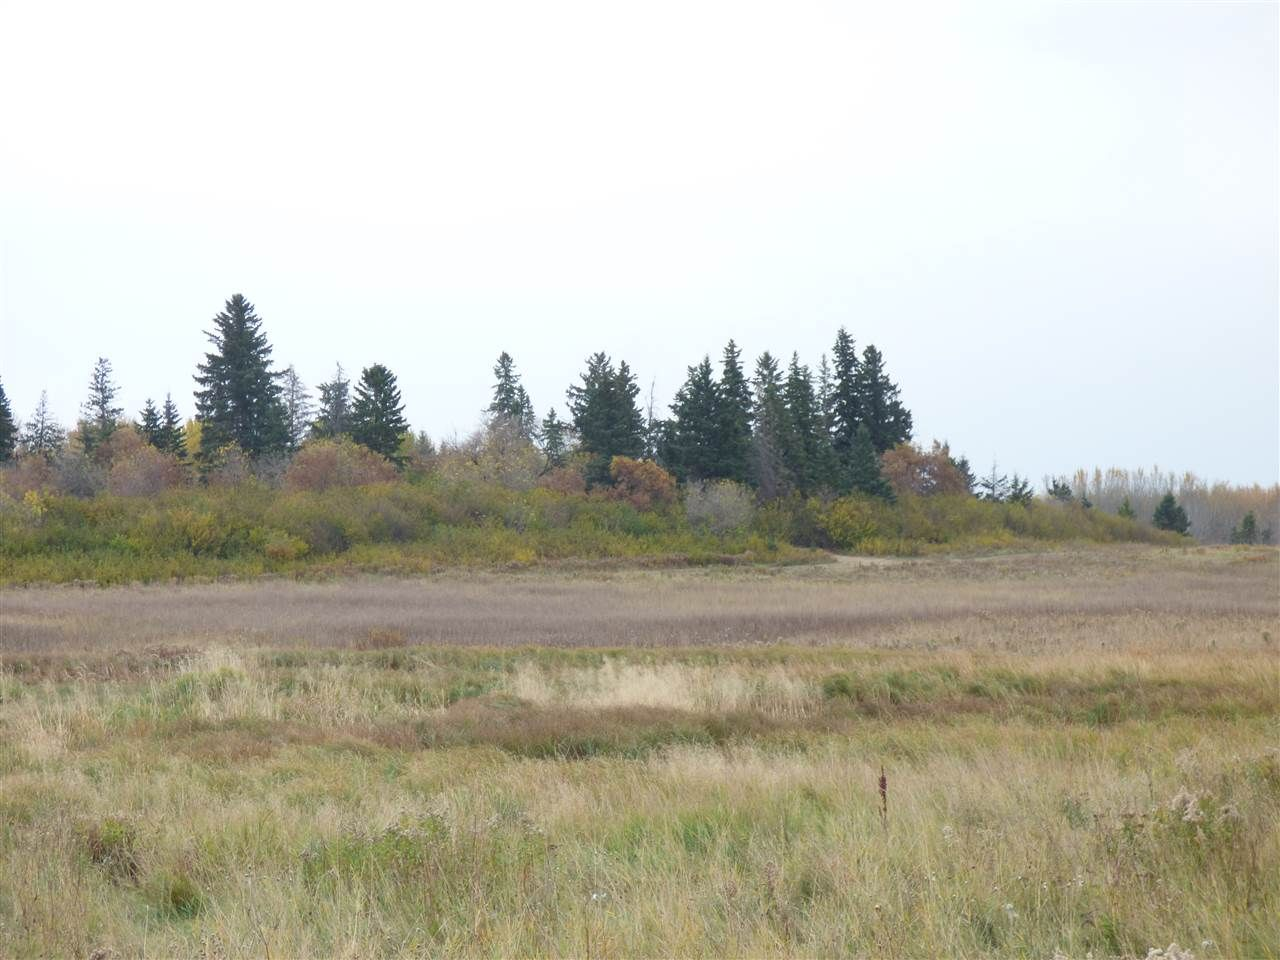 Photo 20: Photos: N1/2 SE19-57-1-W5: Rural Barrhead County Rural Land/Vacant Lot for sale : MLS®# E4217154